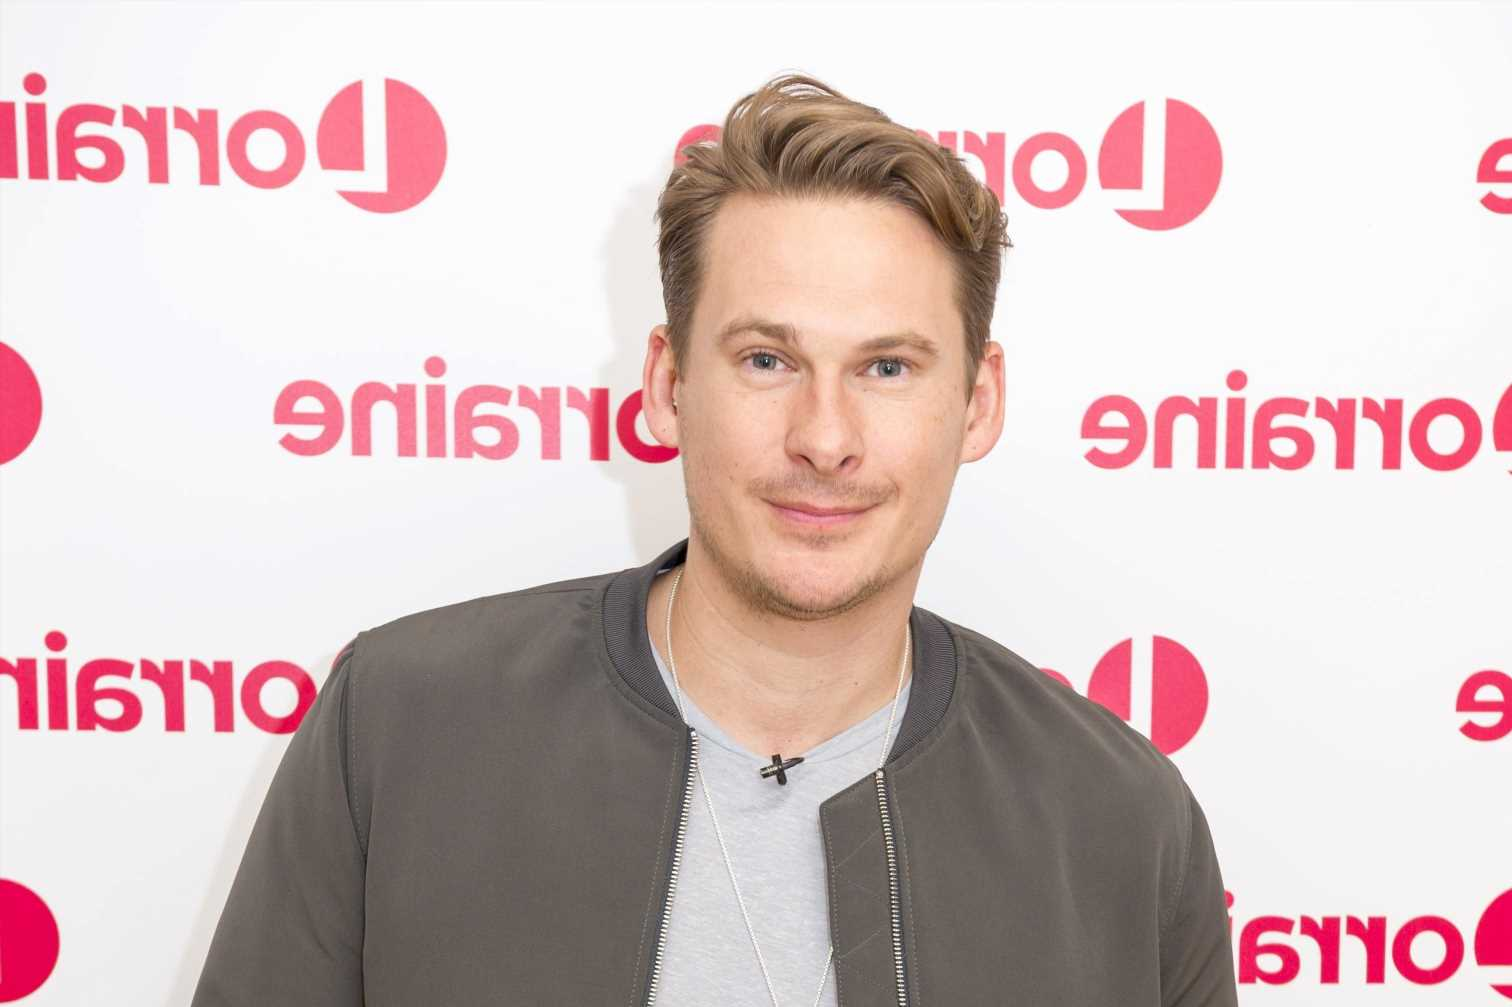 Lee Ryan becomes a dad for the 3rd time as girlfriend Verity gives birth